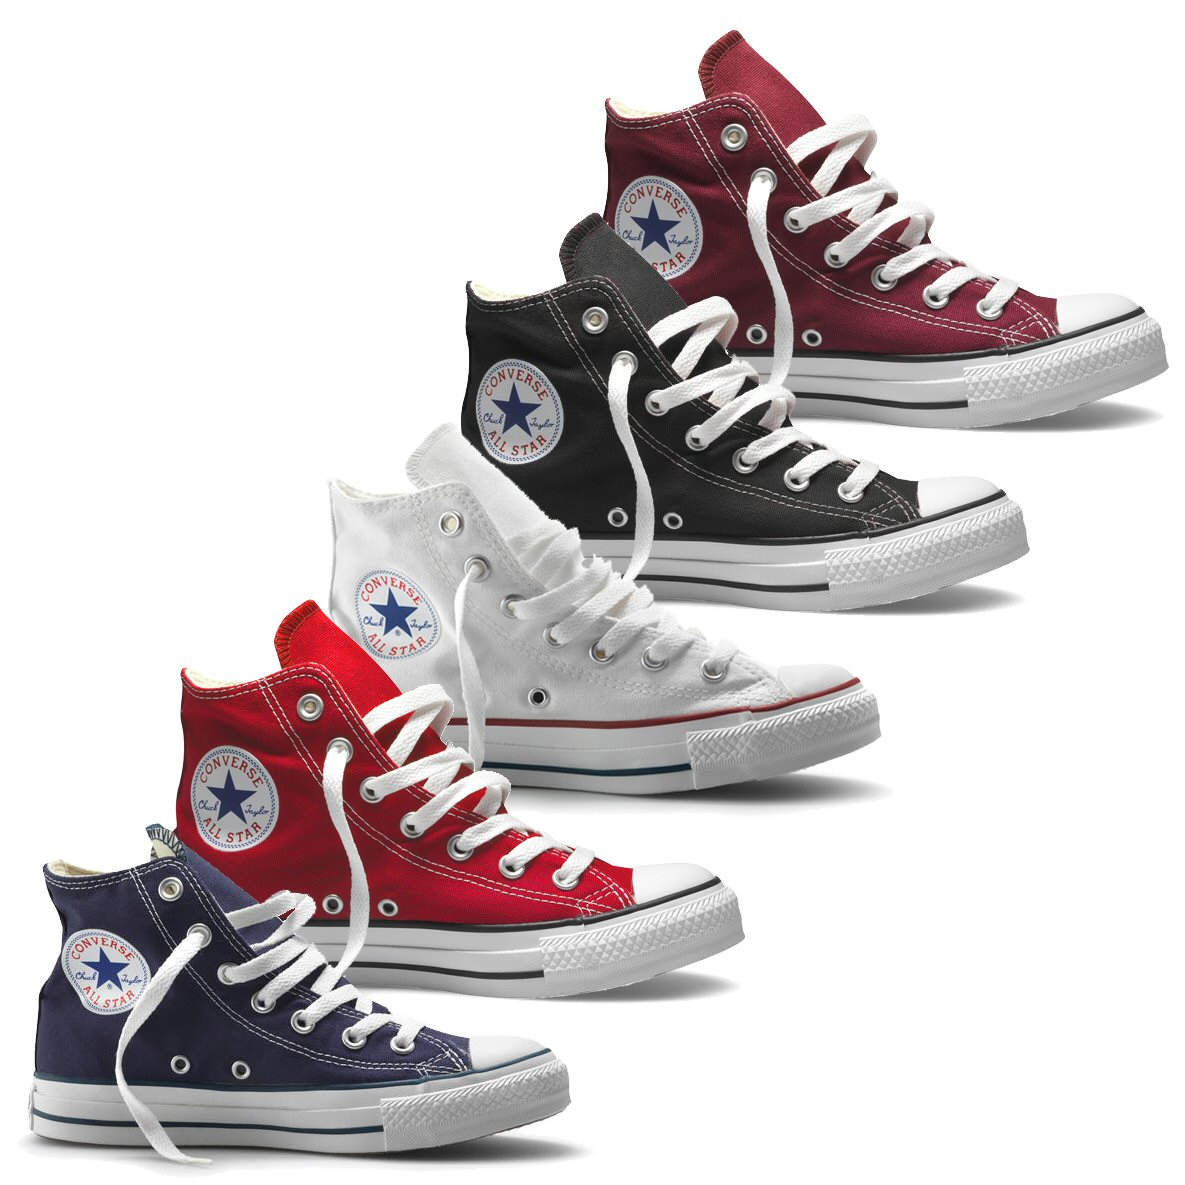 converse chuck taylor all star hi top canvas trainer boot maroon navy white red adaptor clothing. Black Bedroom Furniture Sets. Home Design Ideas